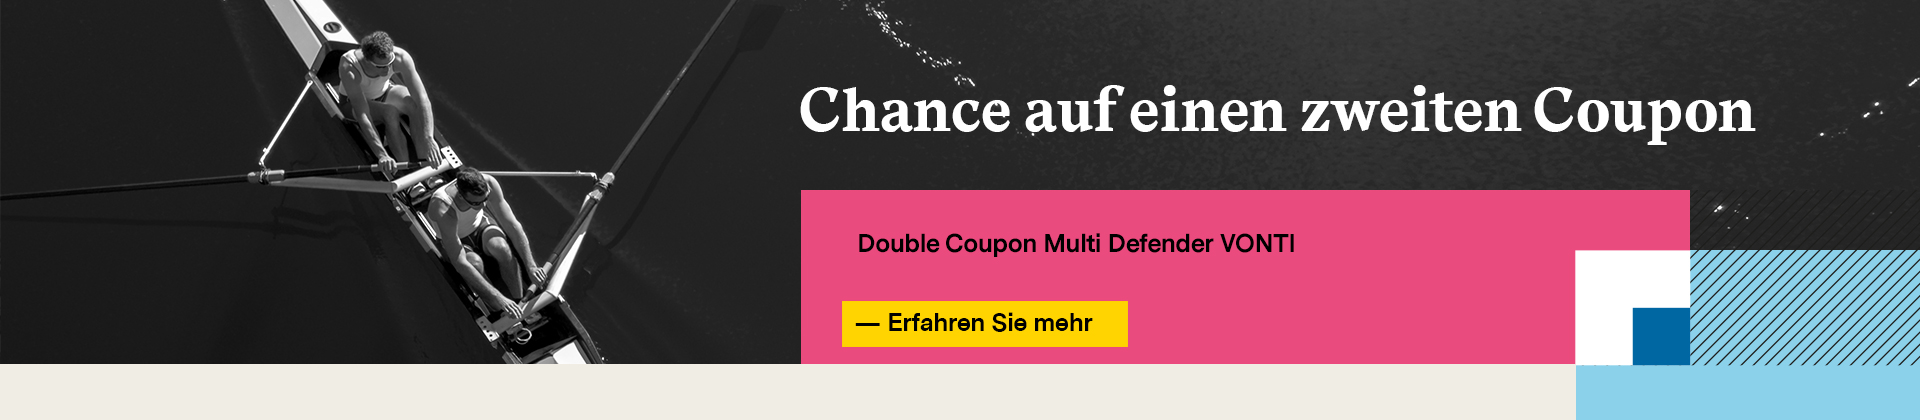 Chance auf einen zweiten Coupon - Double Coupon Multi Defender VONTI